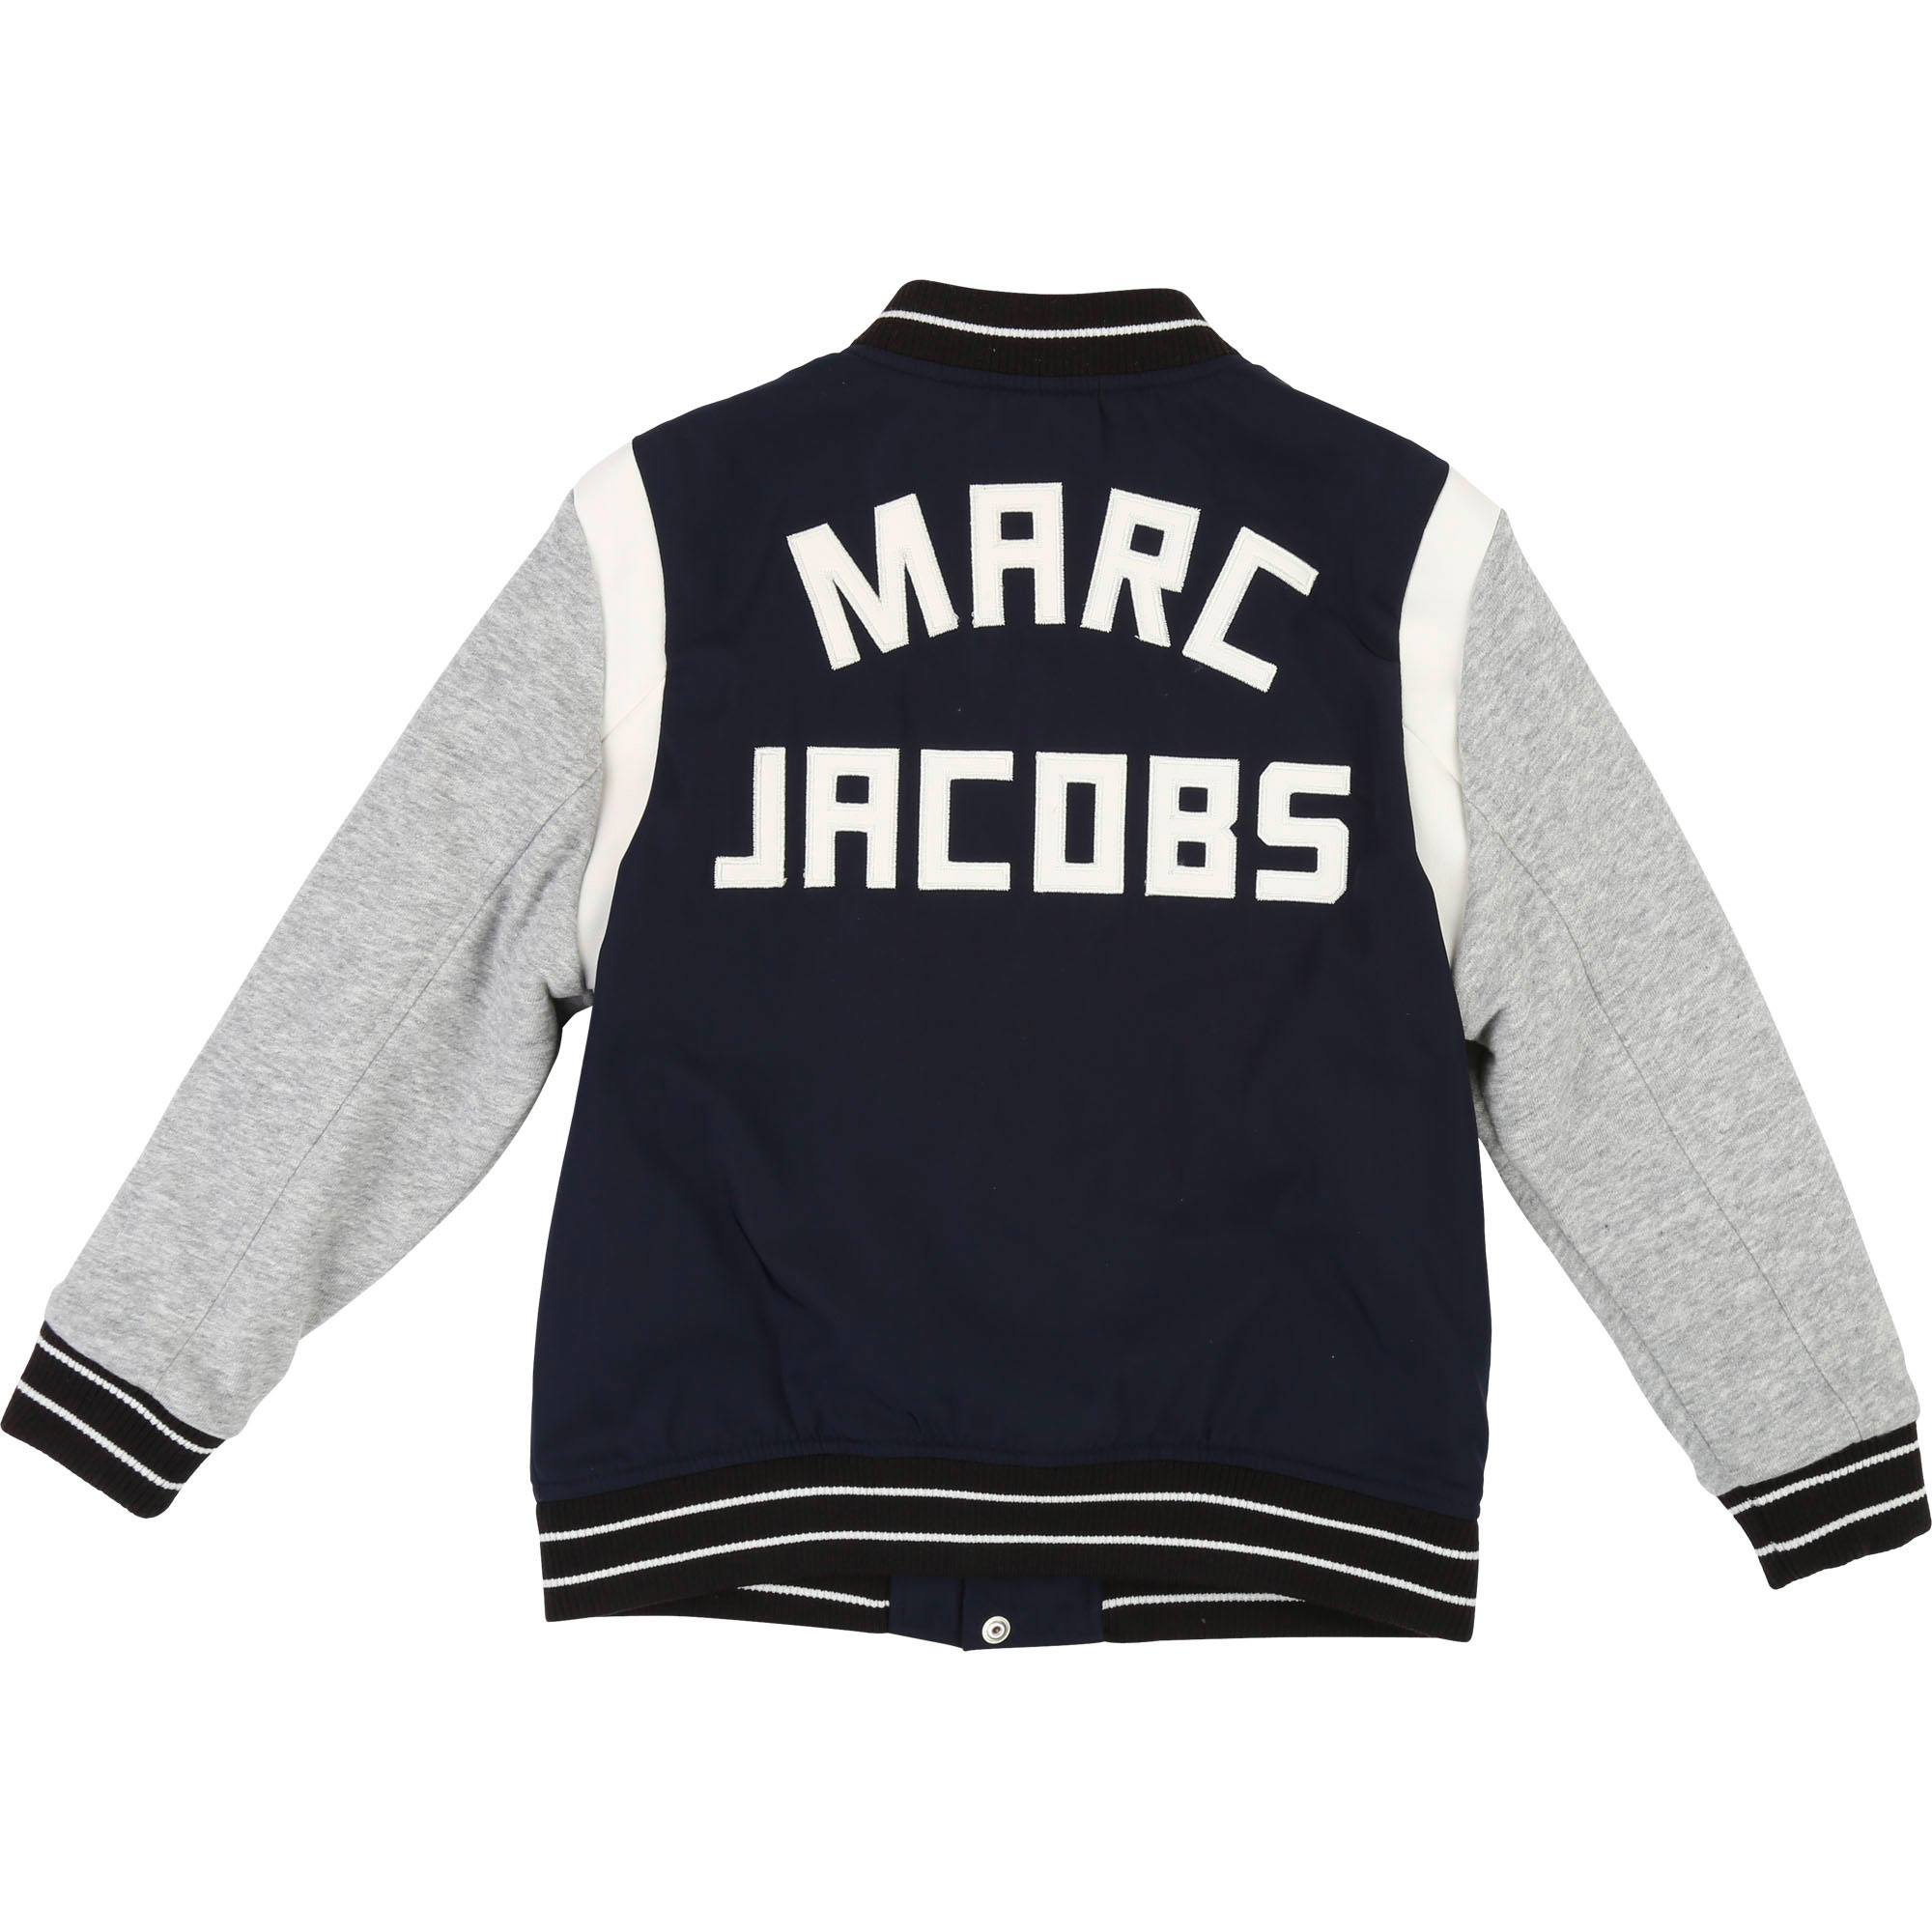 Baseball jacket THE MARC JACOBS for BOY